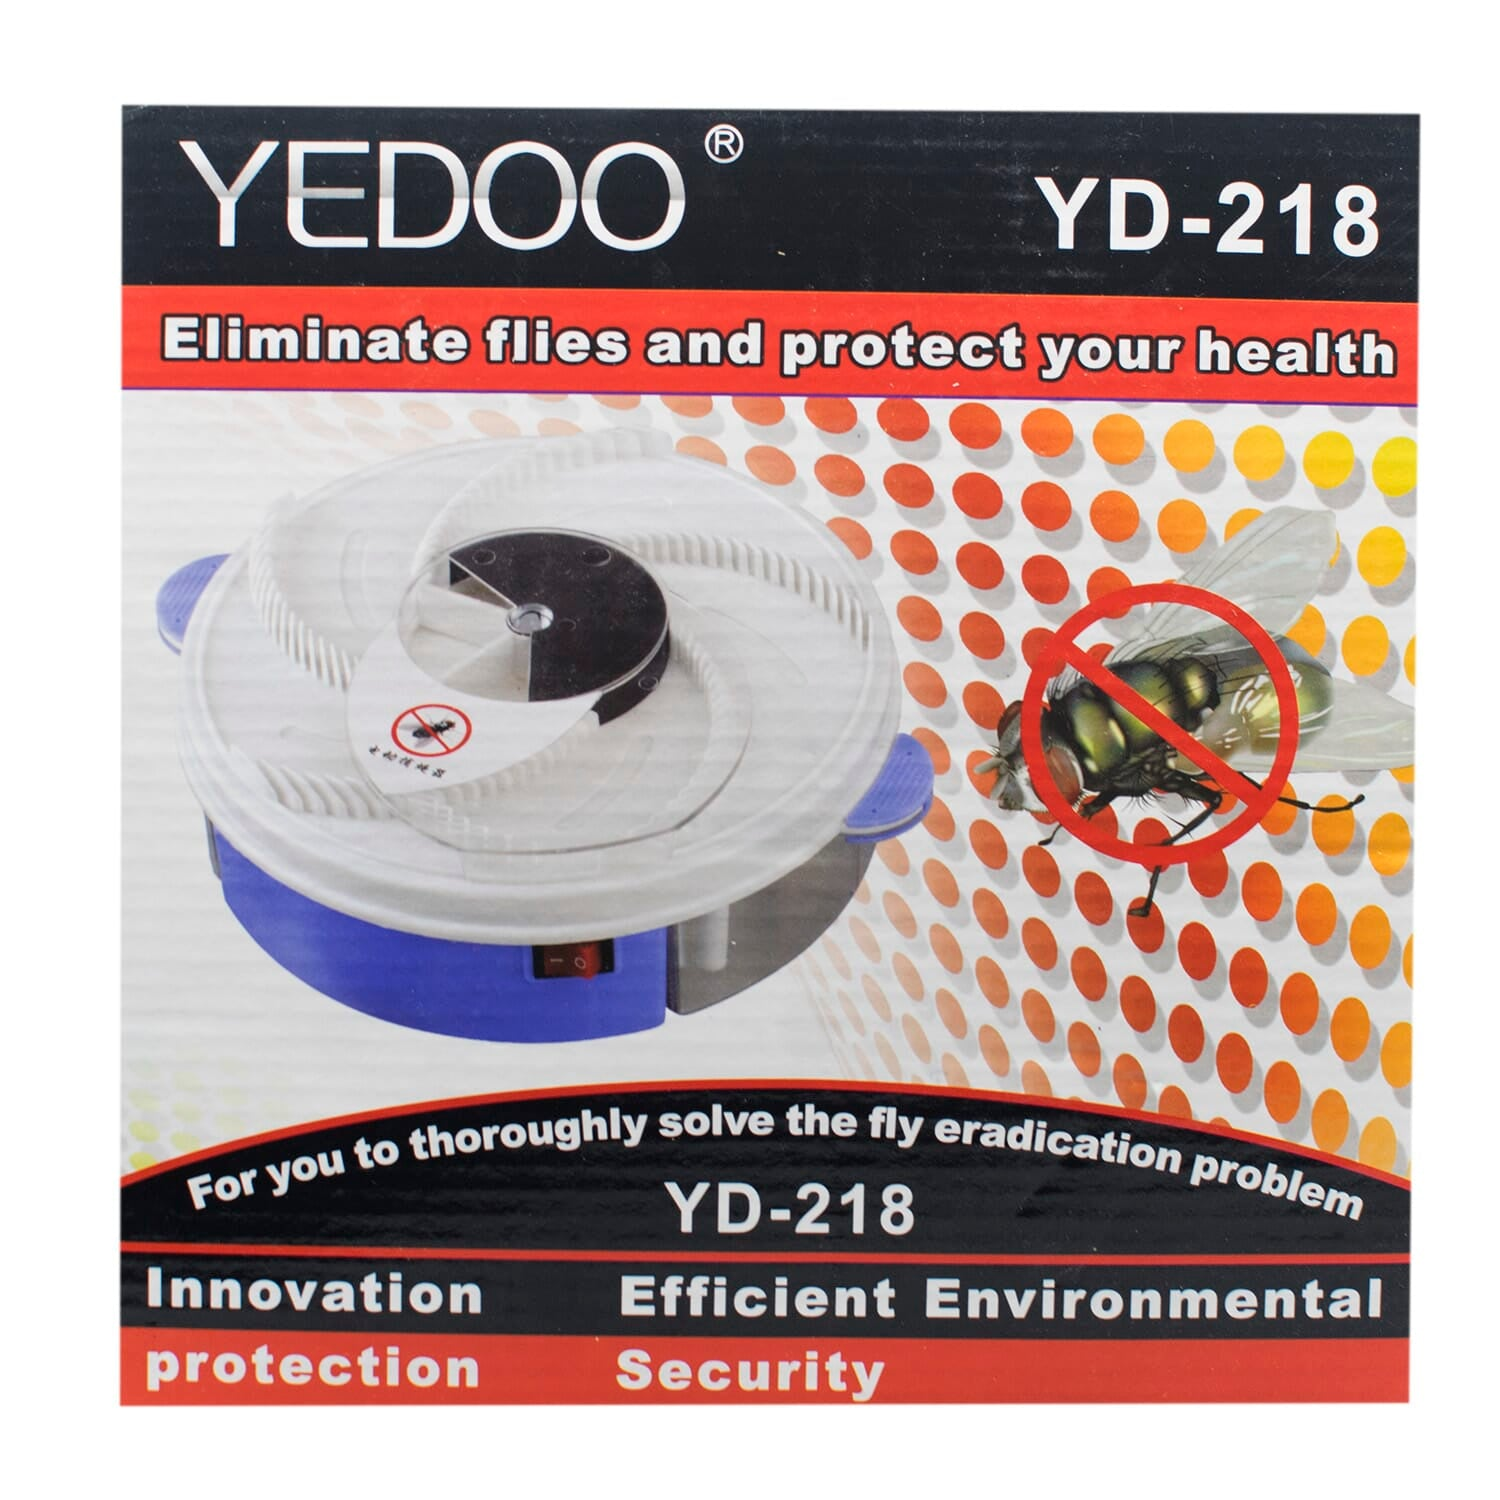 Eliminate flies and protect your health-Yedoo YD - 218